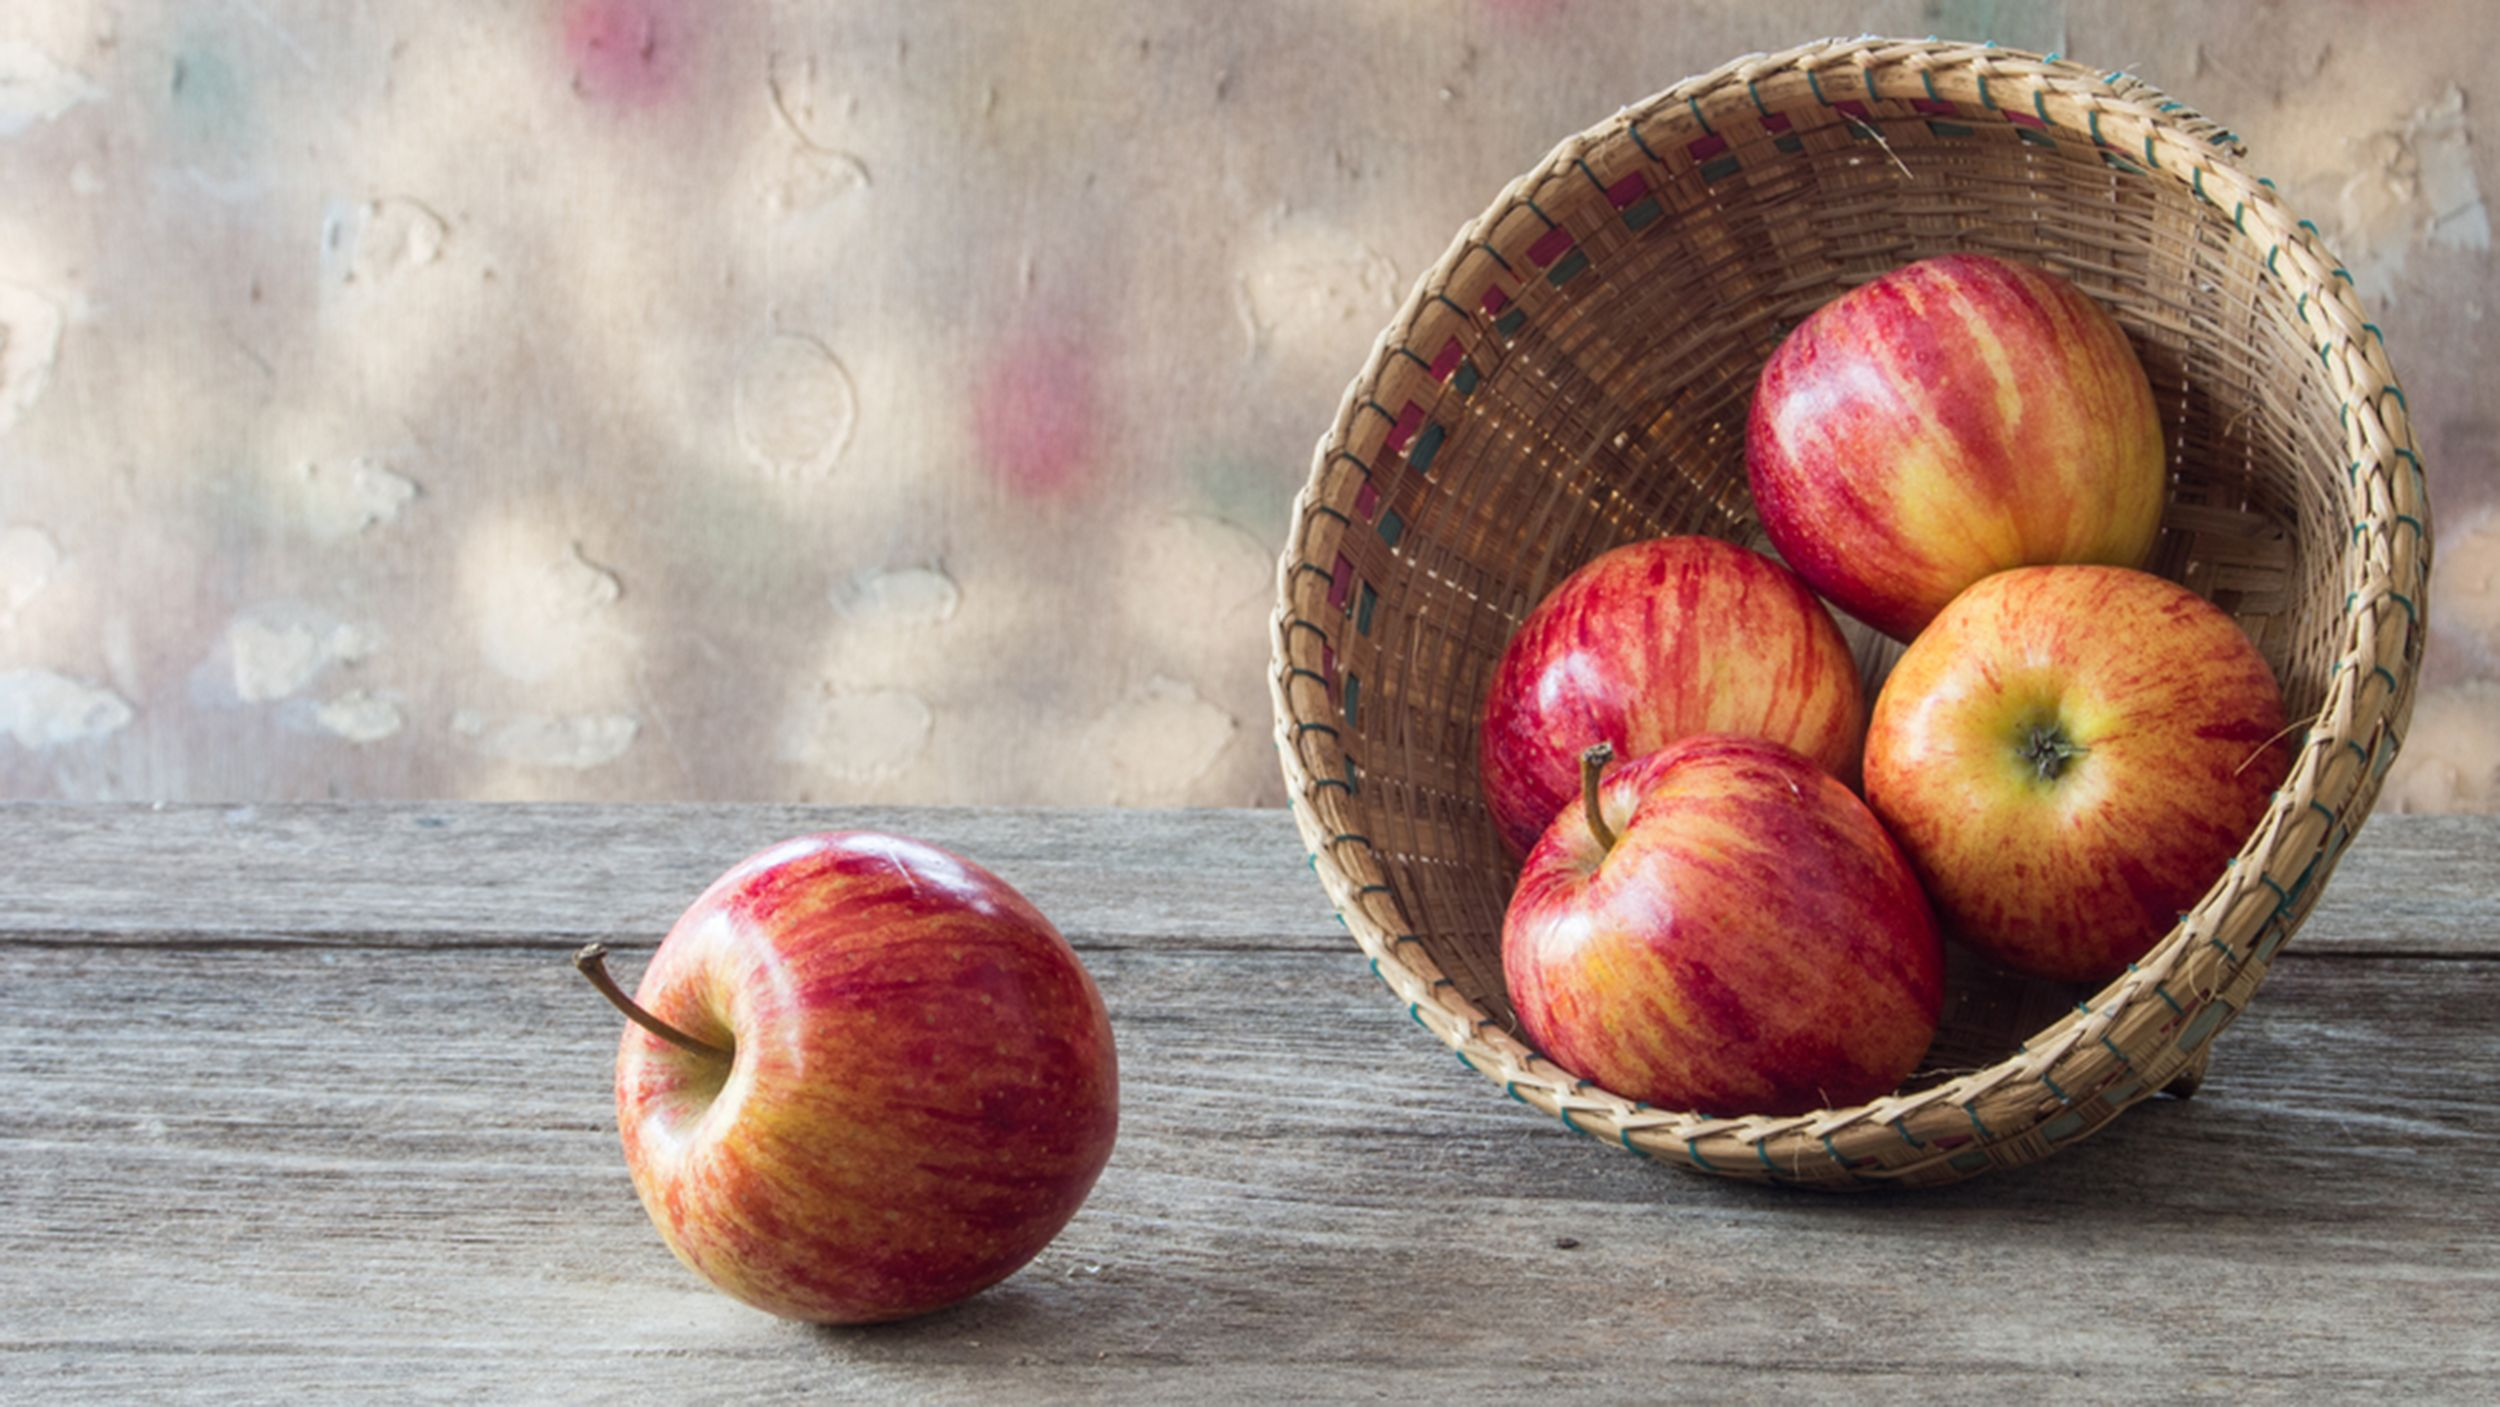 Joy Bauer wants your healthy but delicious apple-themed recipes